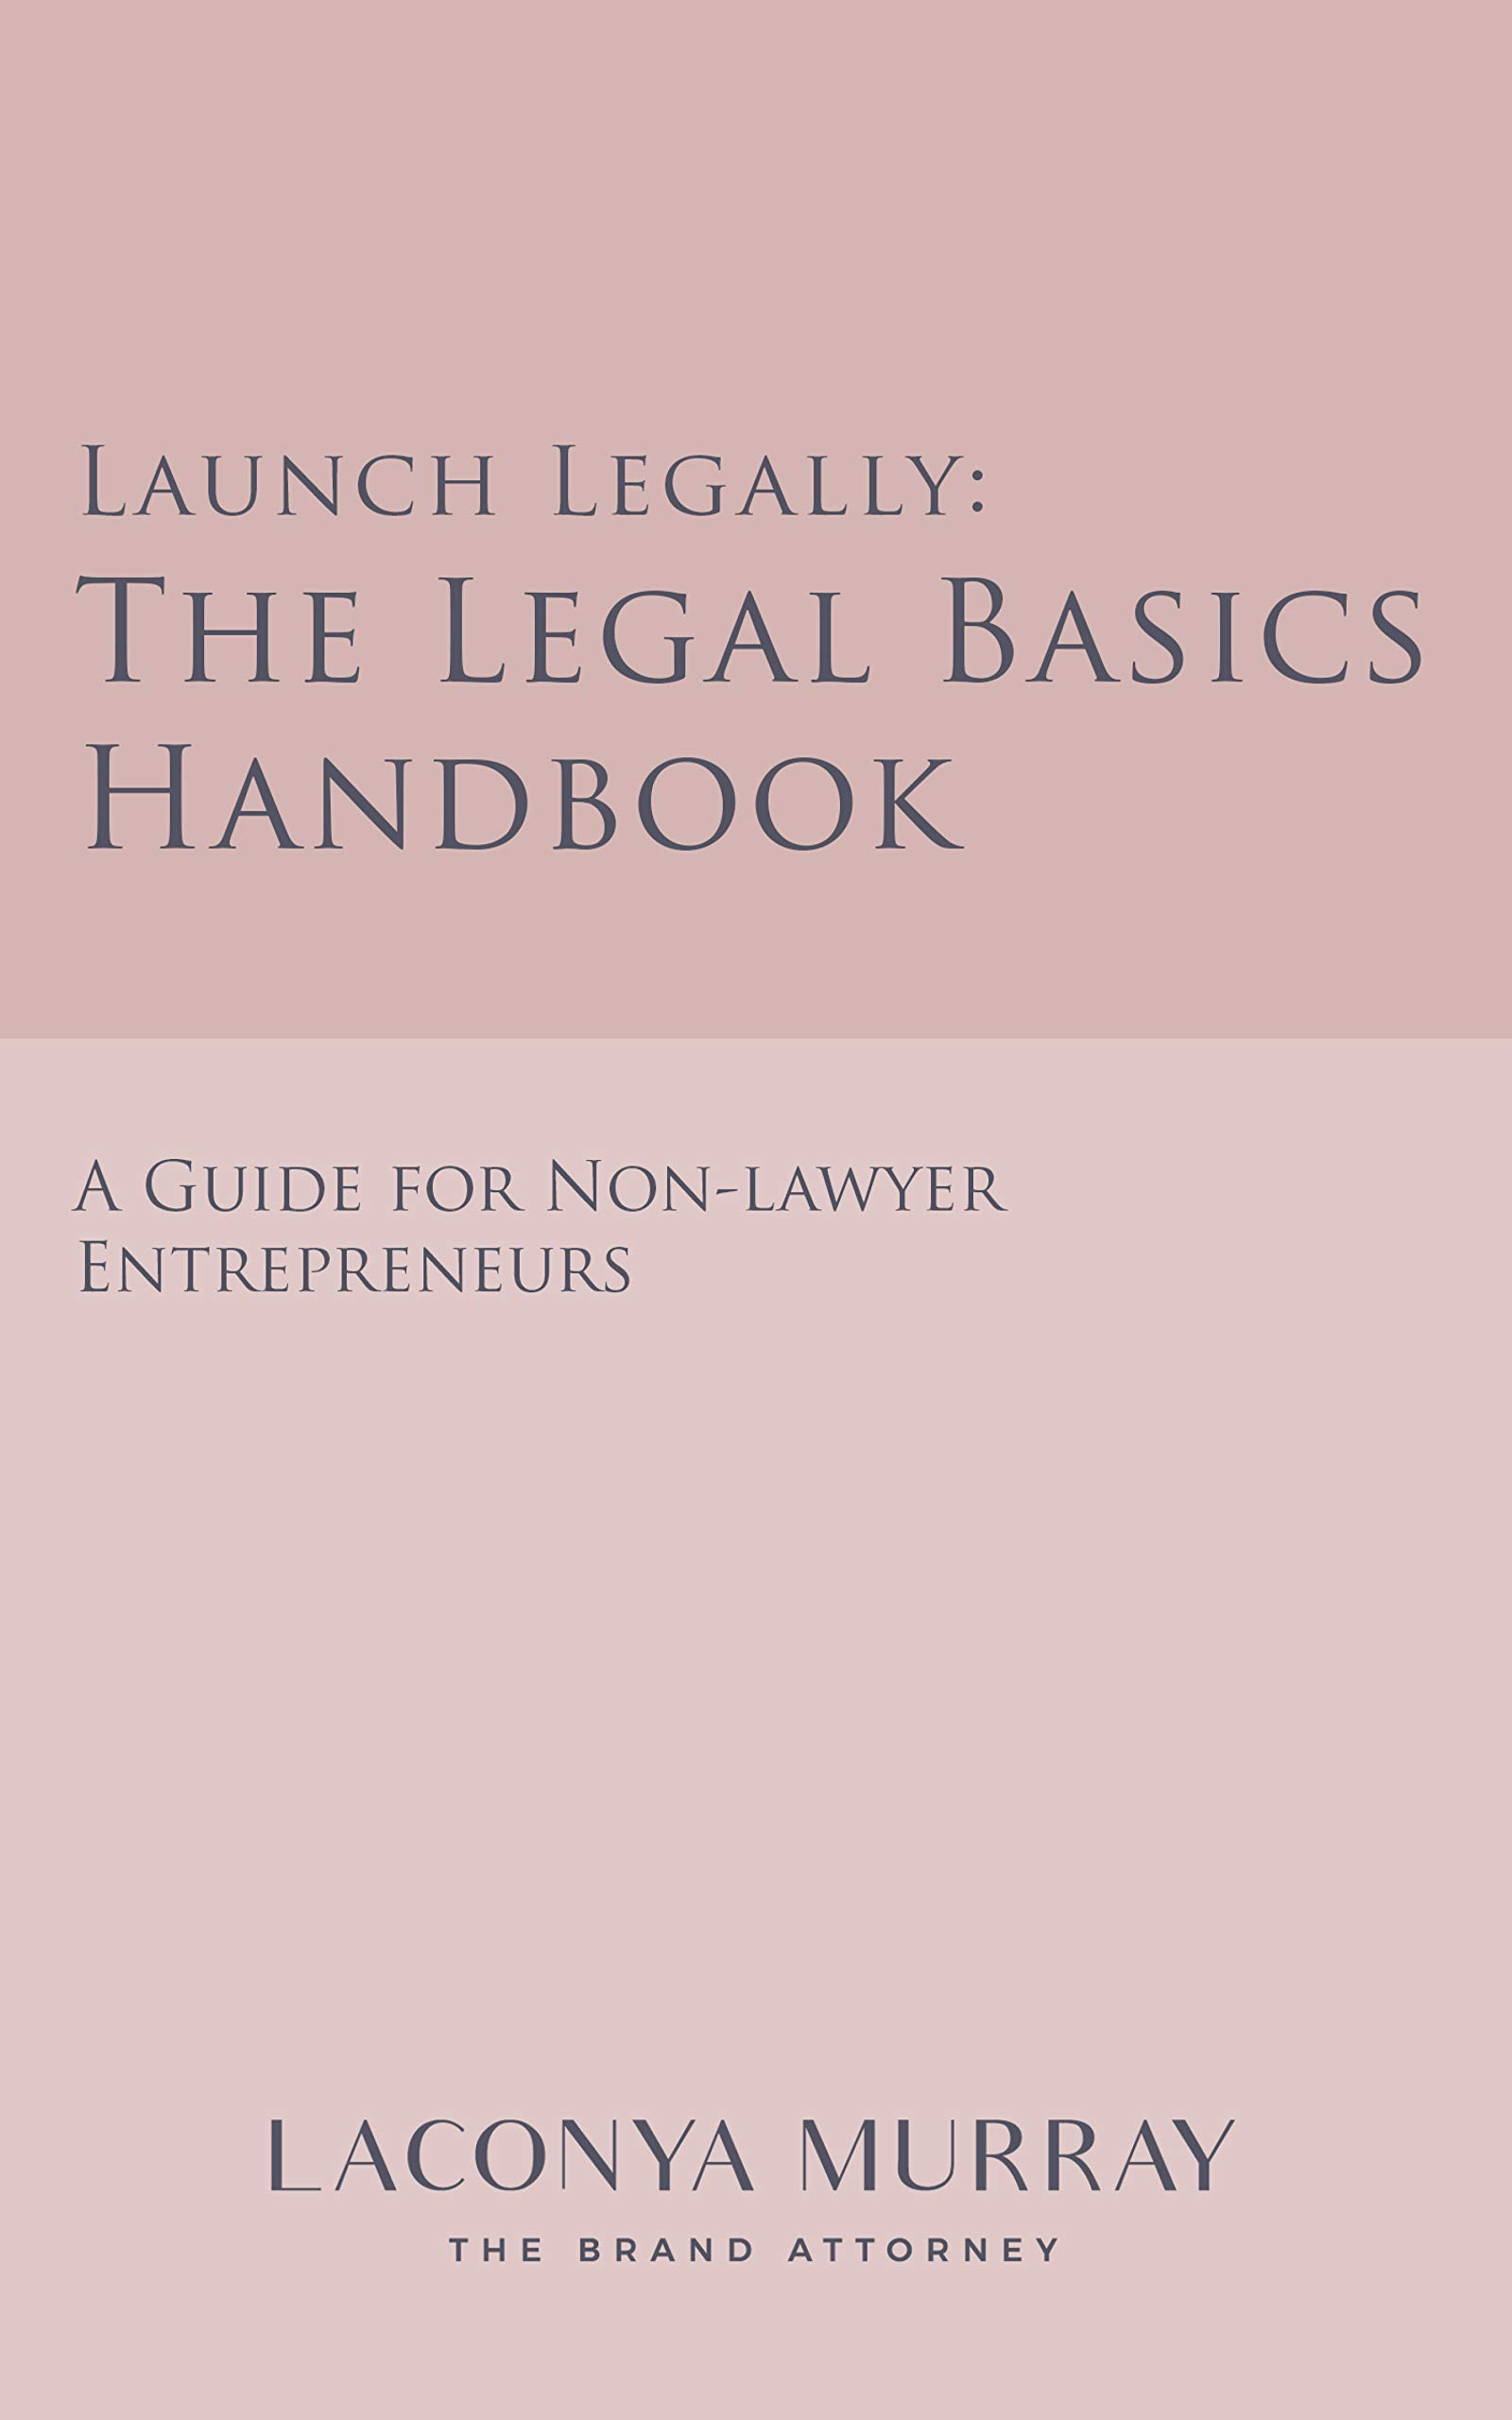 Launch Legally: The Legal Basics Handbook, A Guide For Non-Lawyer Entrepreneurs Ready To Launch Legally